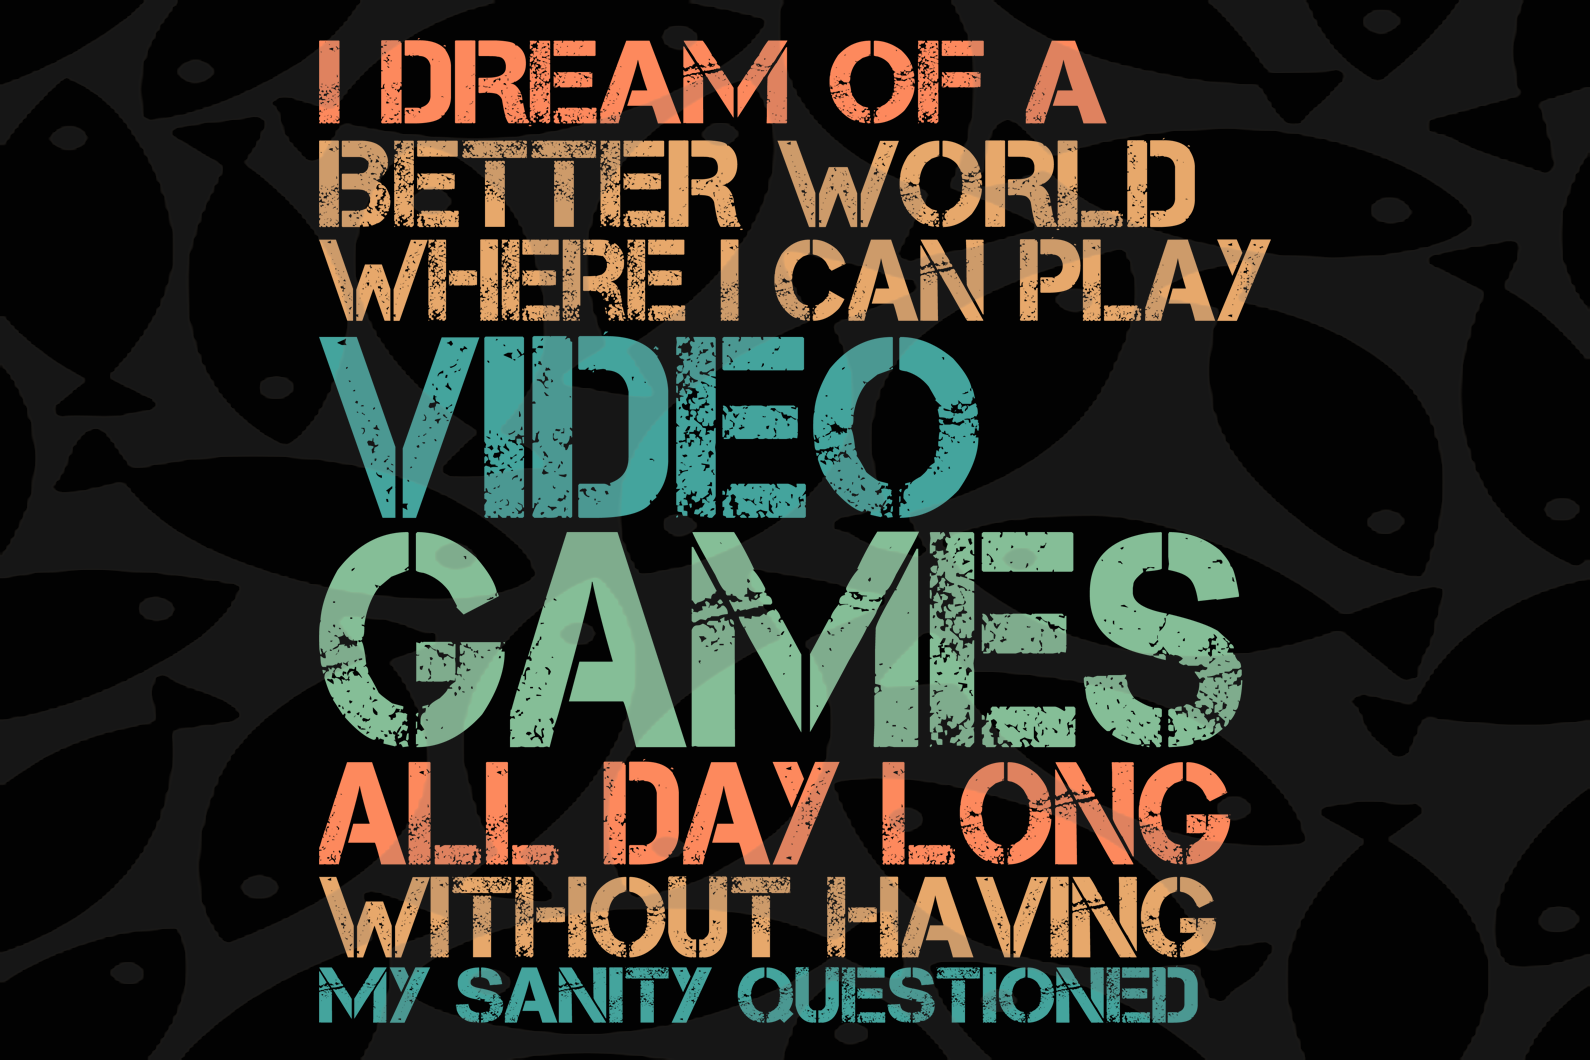 I dream of a better world where I can play video games svg, video game cool, video game, iron banana logo, video game lover, video game lover svg, banana clipart, instant download, digital file,